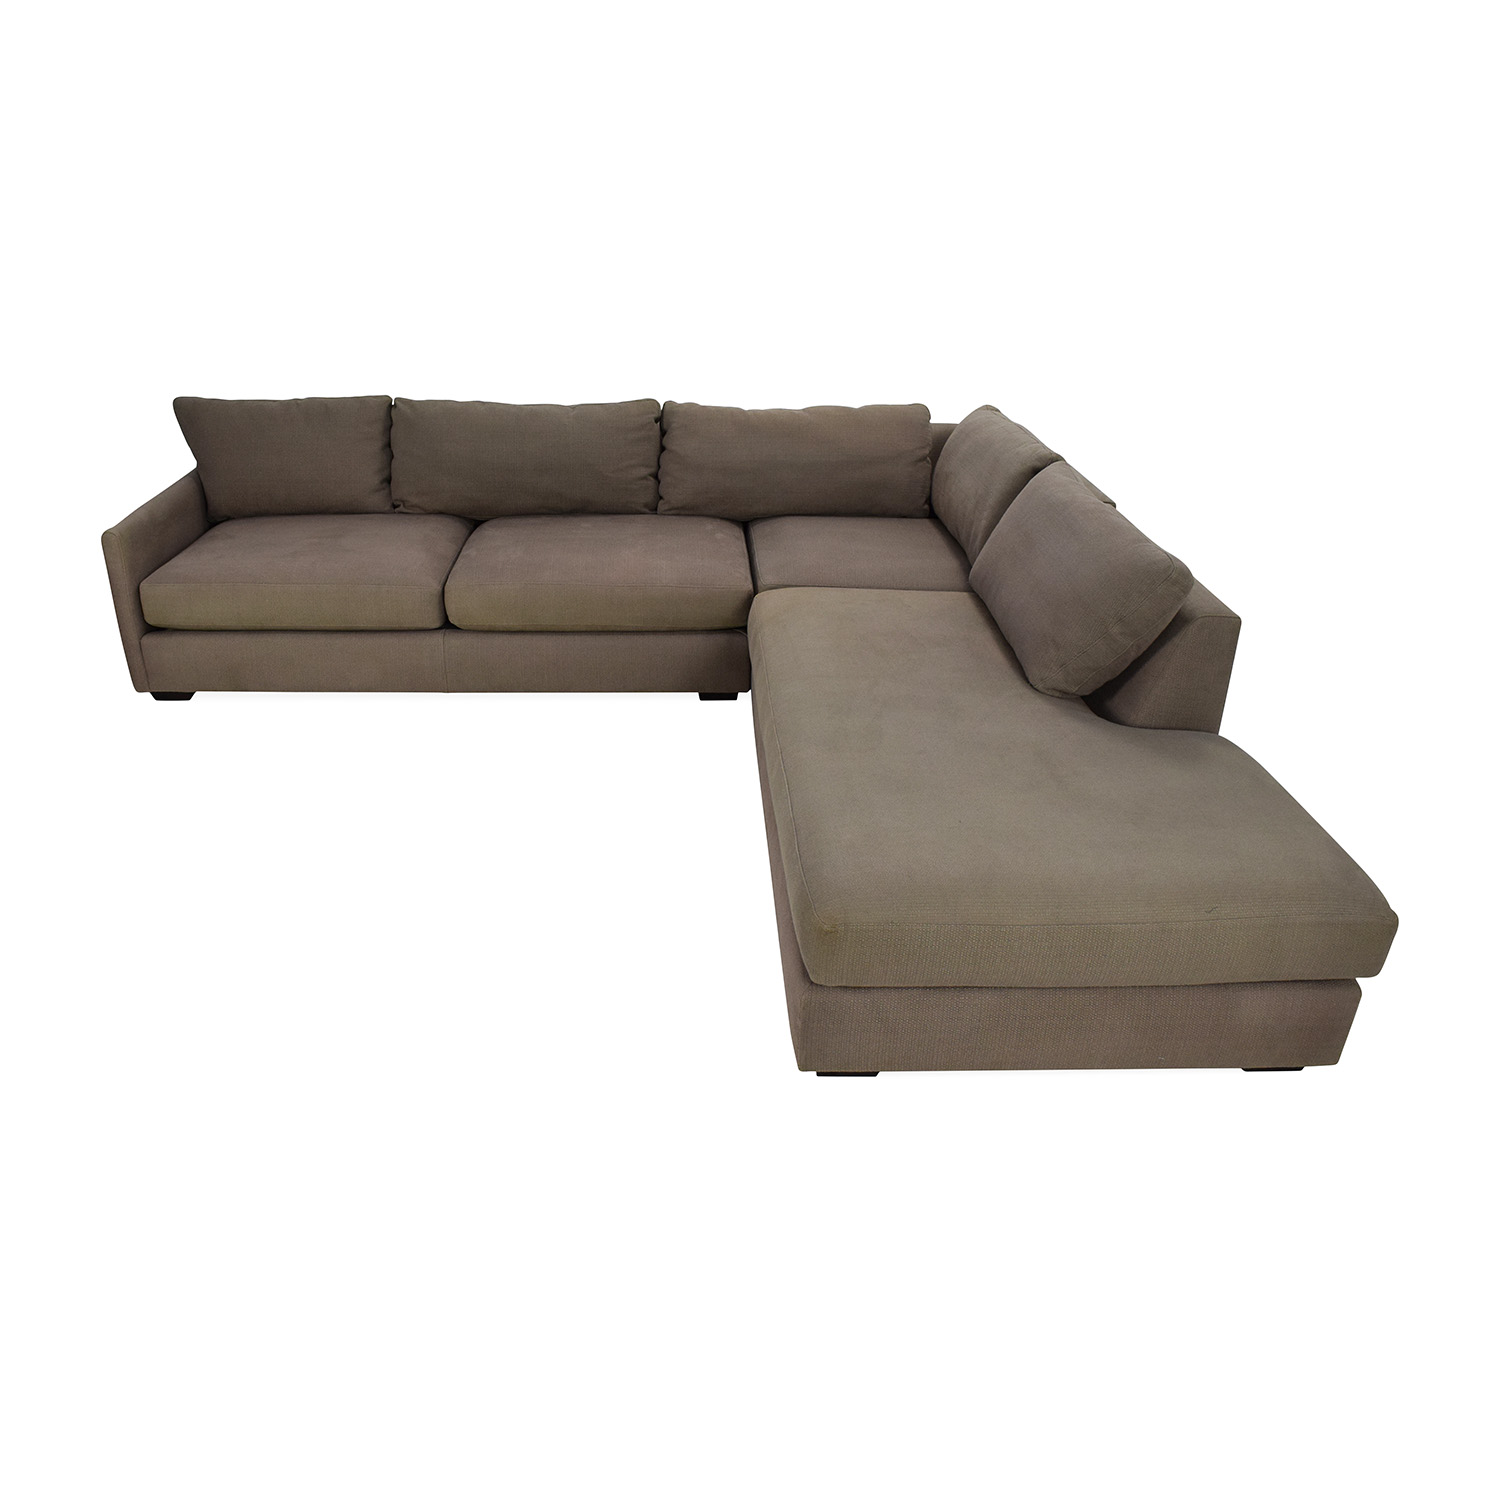 Crate and barrel sofa quality -  Crate And Barrel Sofas Download